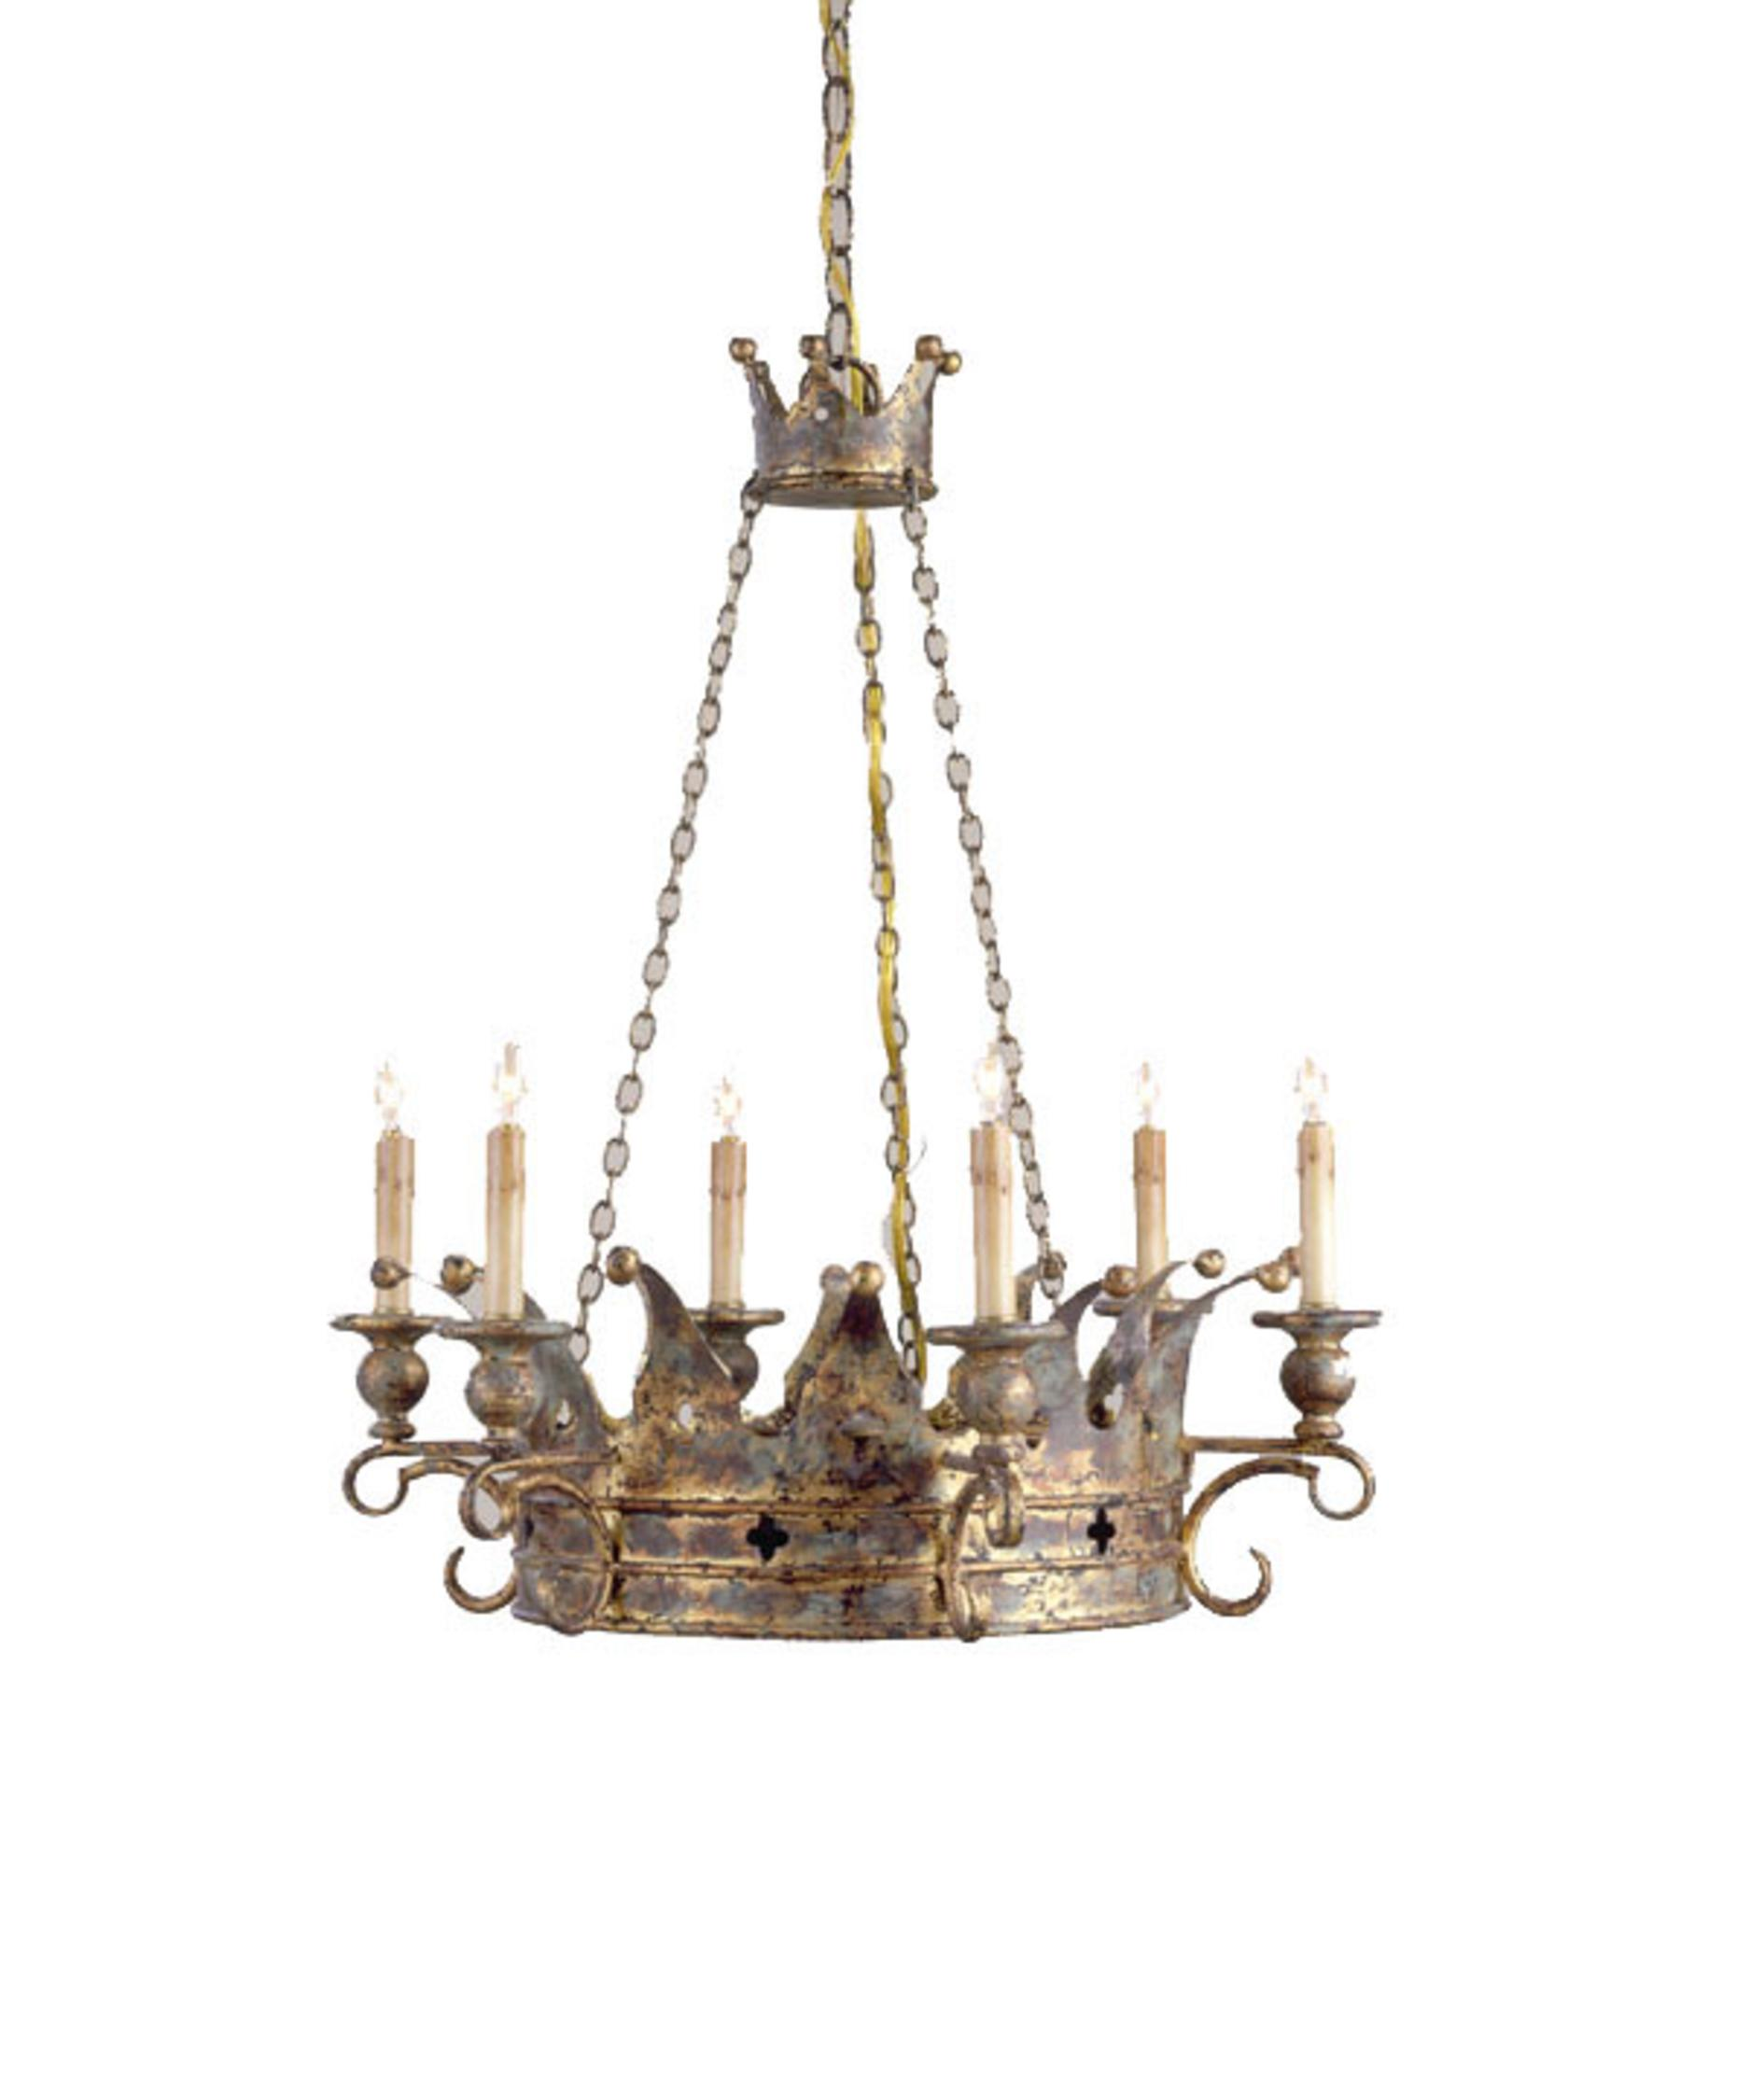 Currey and Company Crown 24 Inch Wide 6 Light Chandelier – Currey and Company Lighting Chandeliers